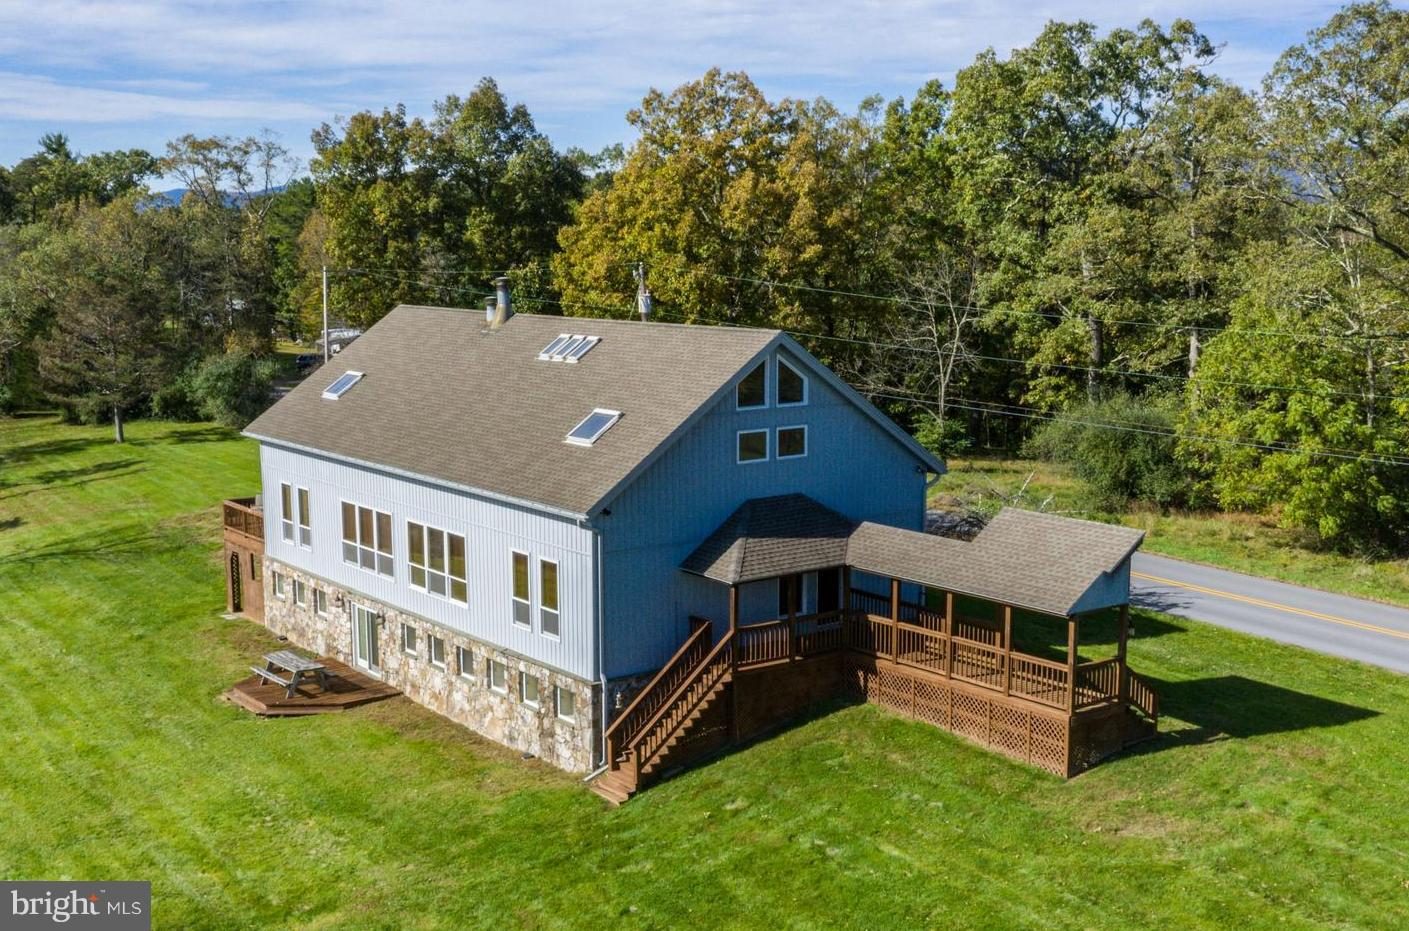 512 BREEZY POINT ROAD, MCCONNELLSBURG, PA 17233